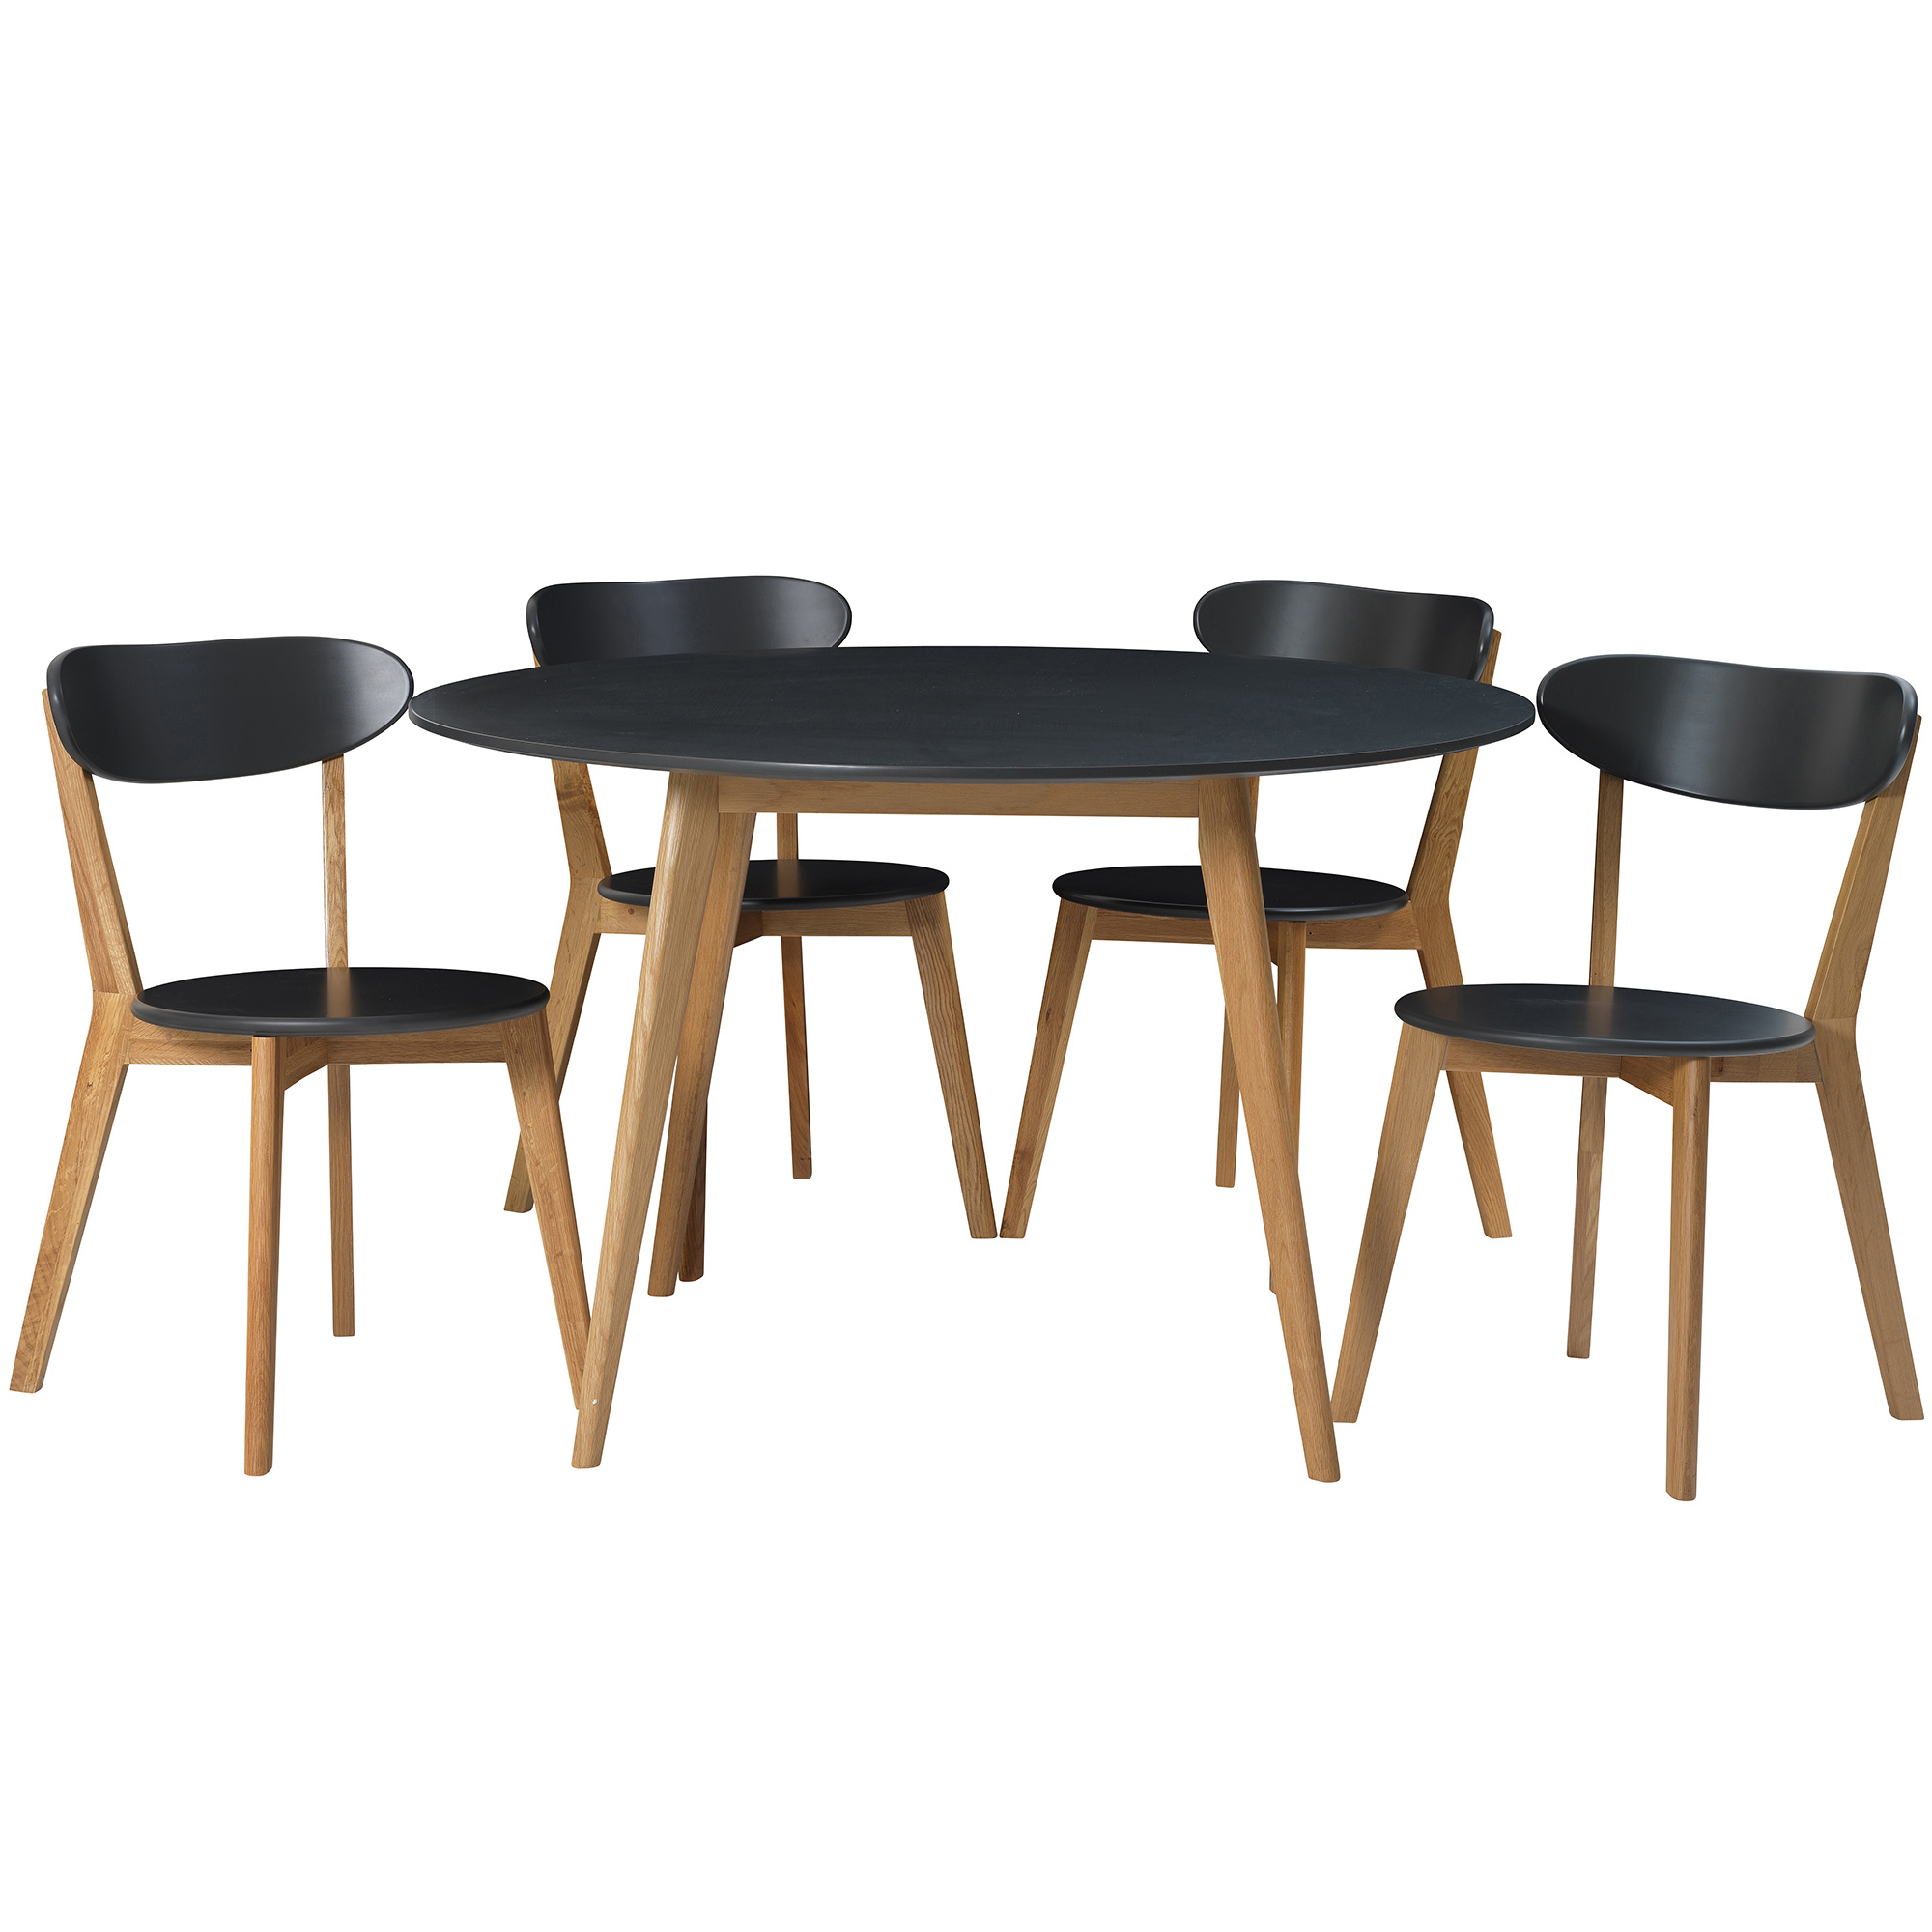 d58bcbf81 SKU  ESTA1211 4 Seater Round Oslo Dining Table   Chair Set is also  sometimes listed under the following manufacturer numbers  10045 Graphite +  2 x 10043